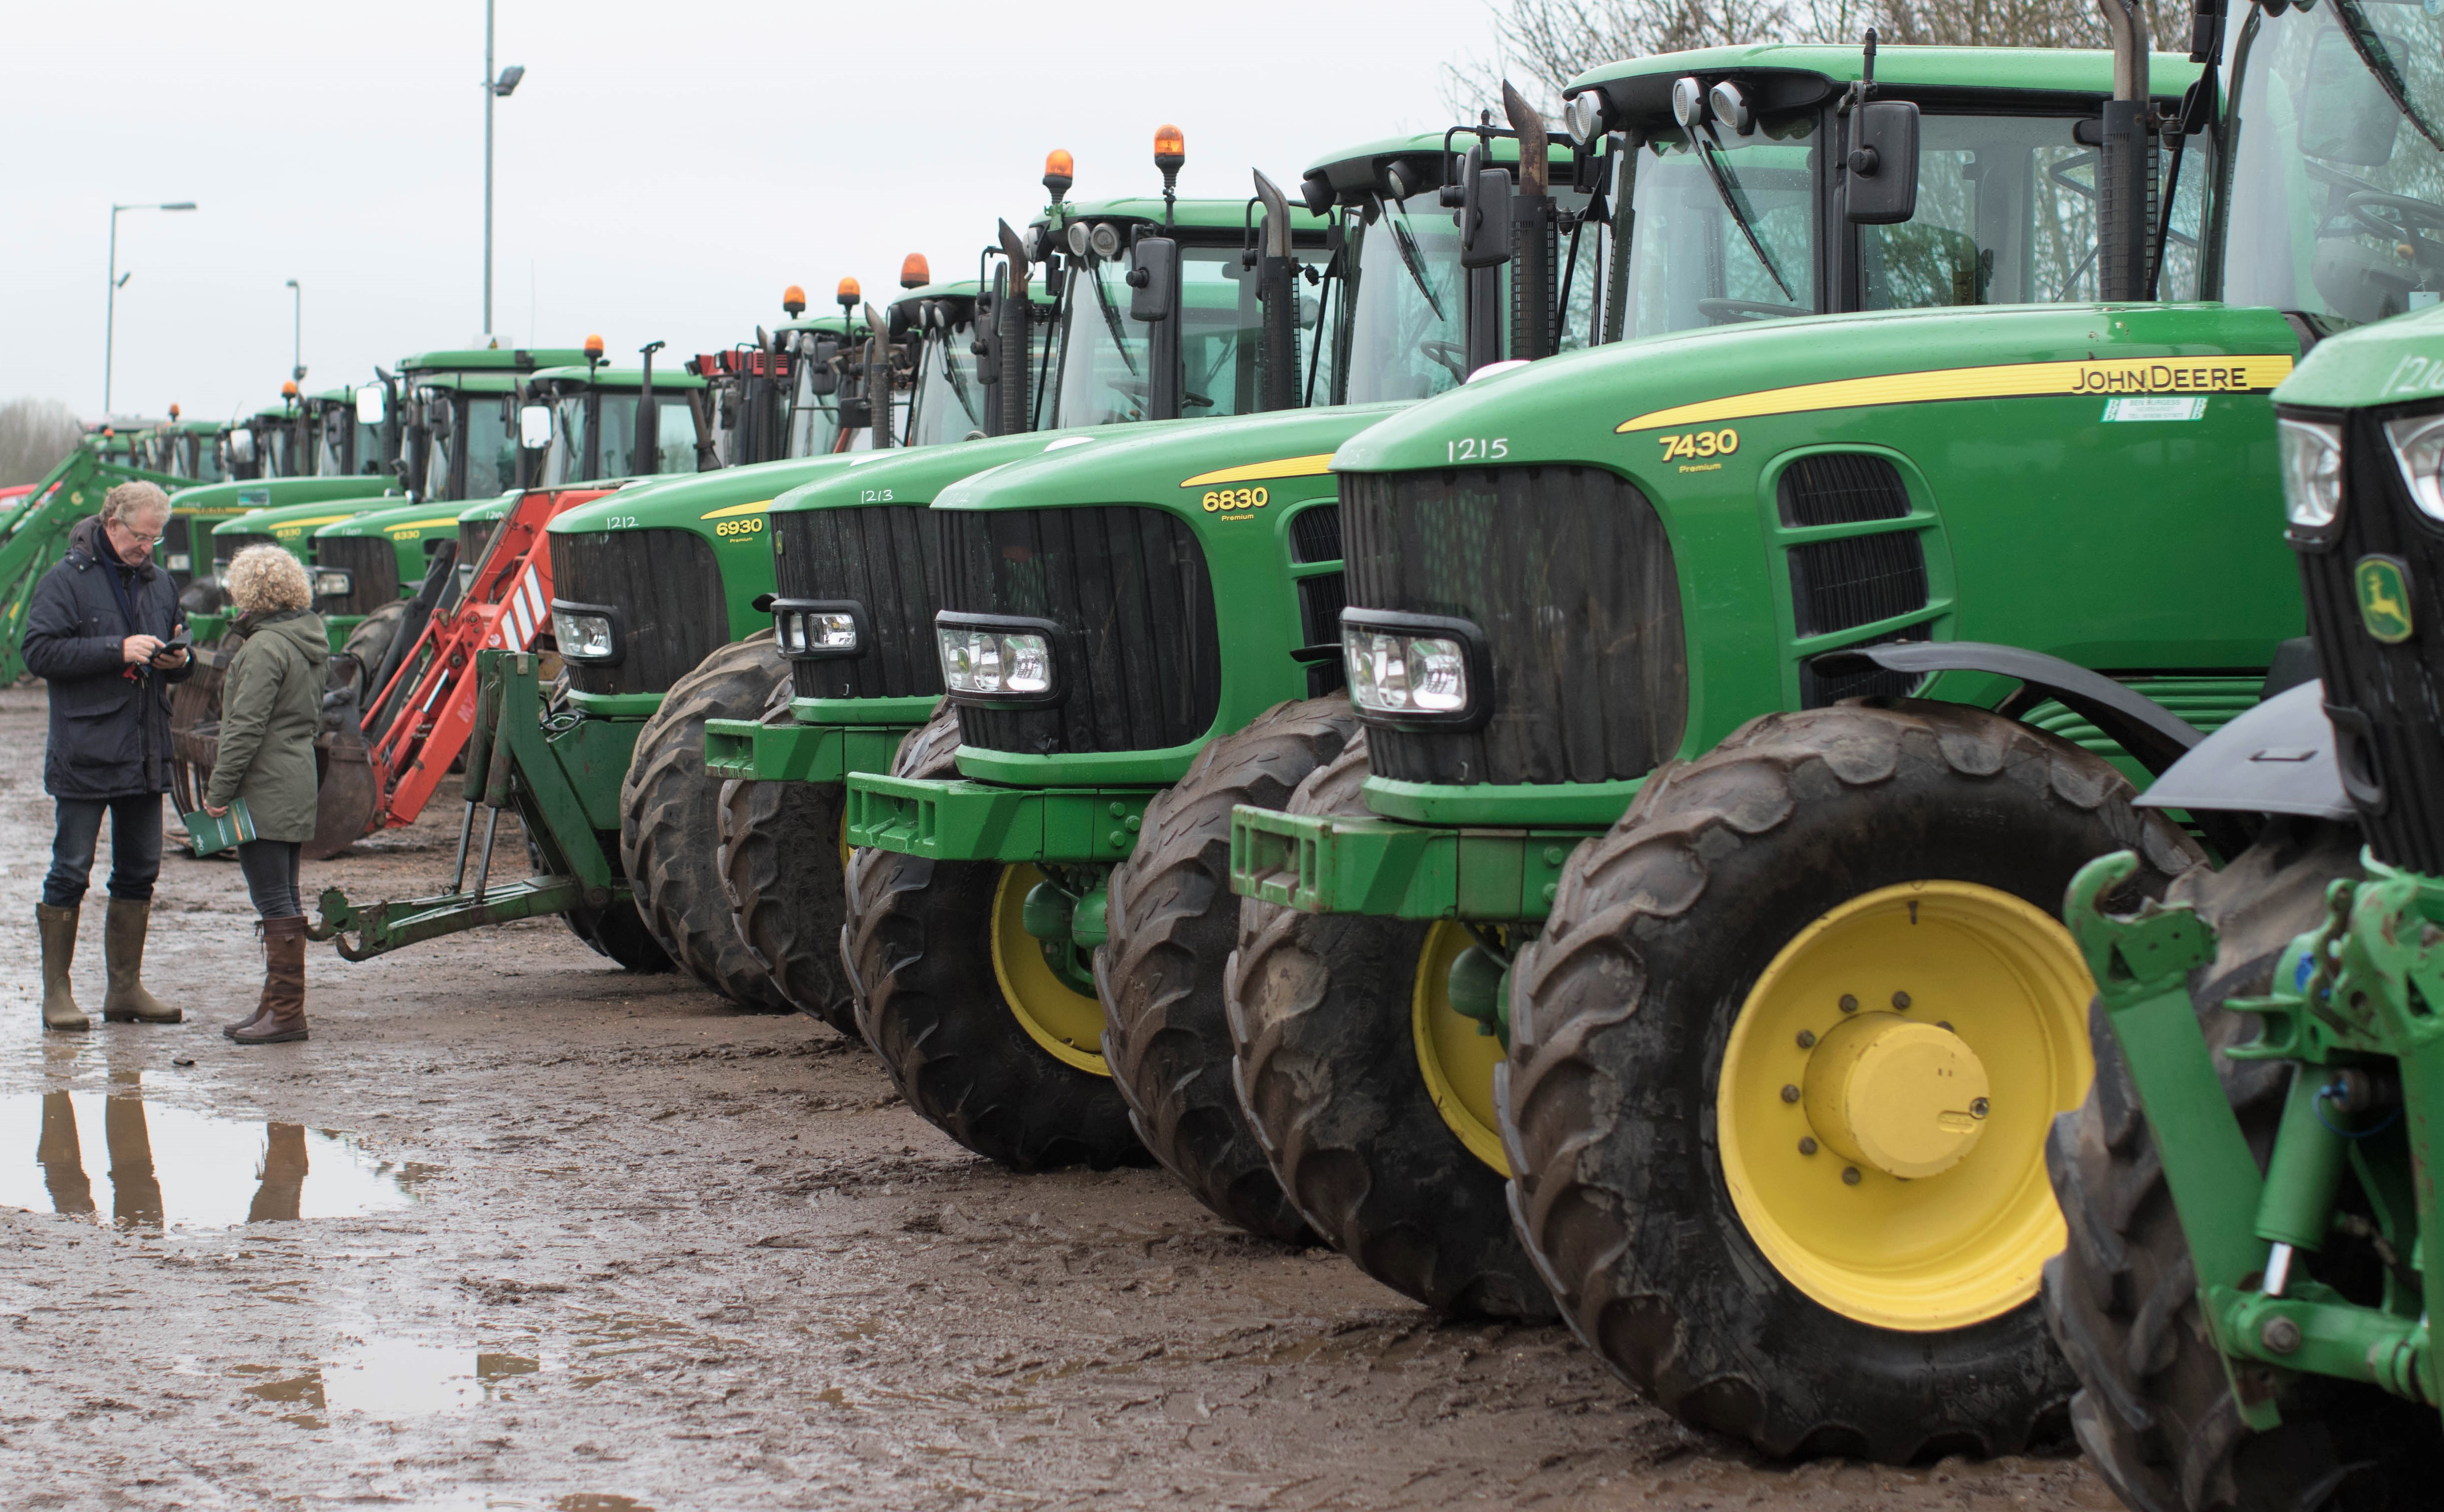 Auction report: 'Green' bargains at monster April tractor